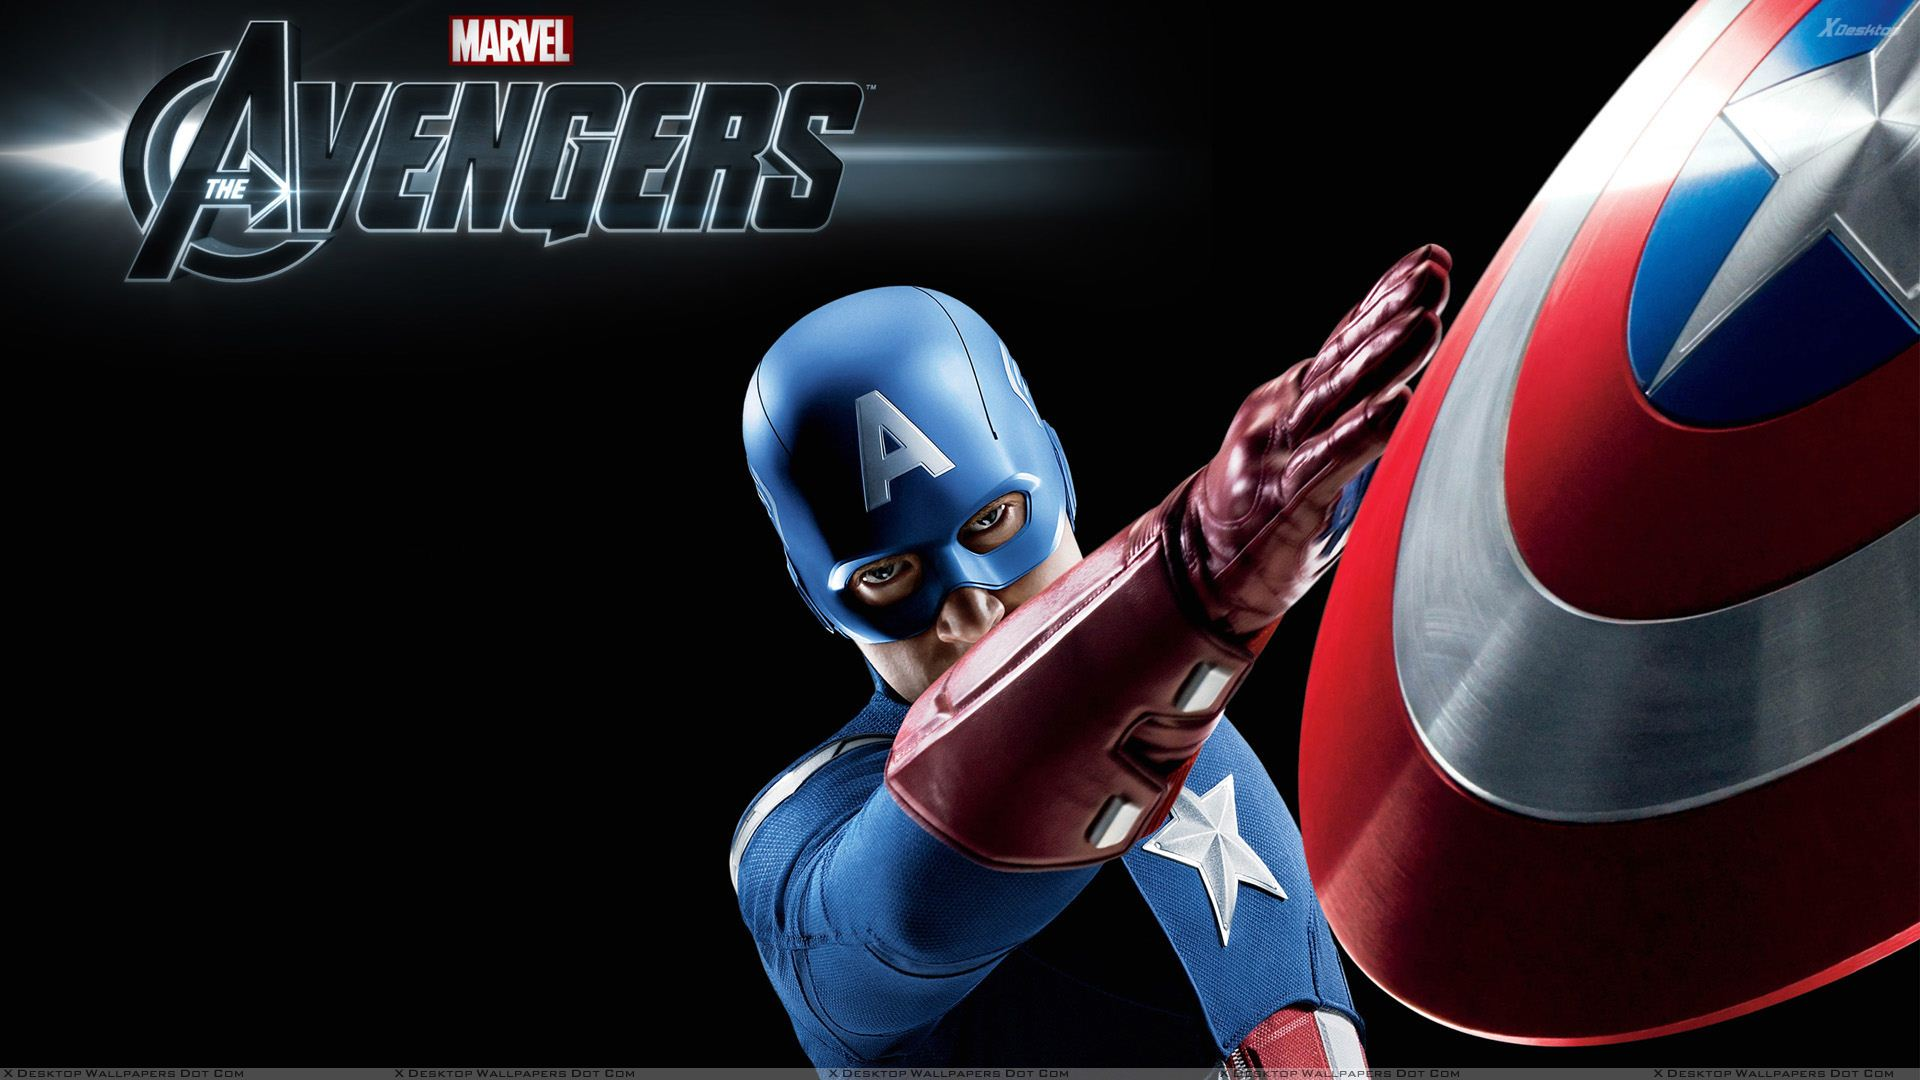 The Avengers Chris Evans As Captain America Throwing Shield